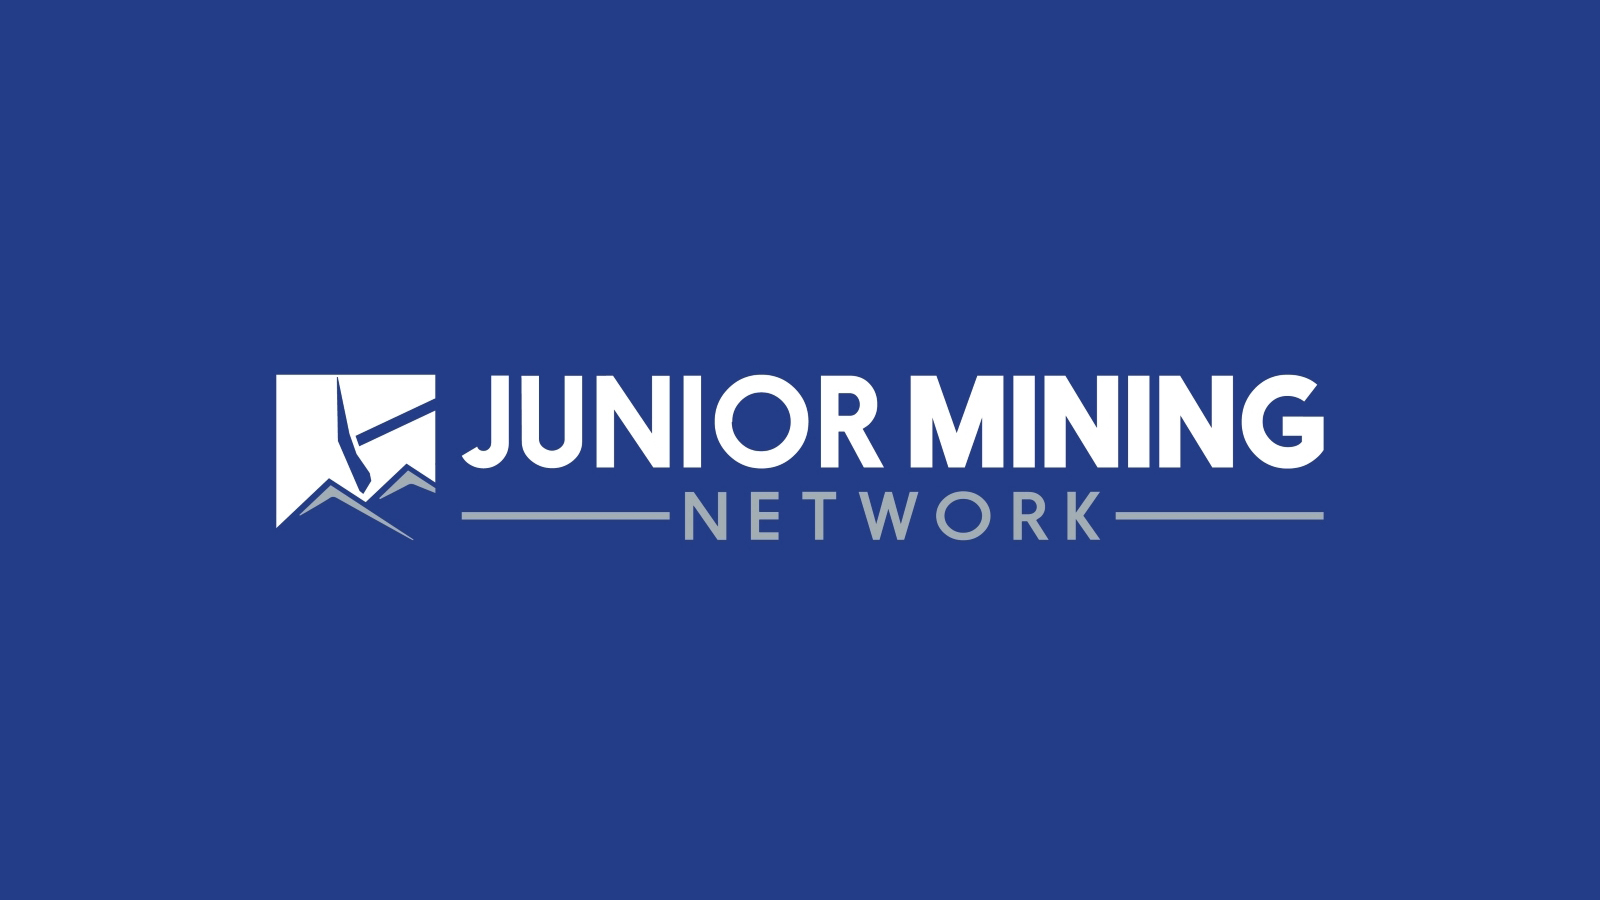 International Tower Hill Mines Announces Management Change